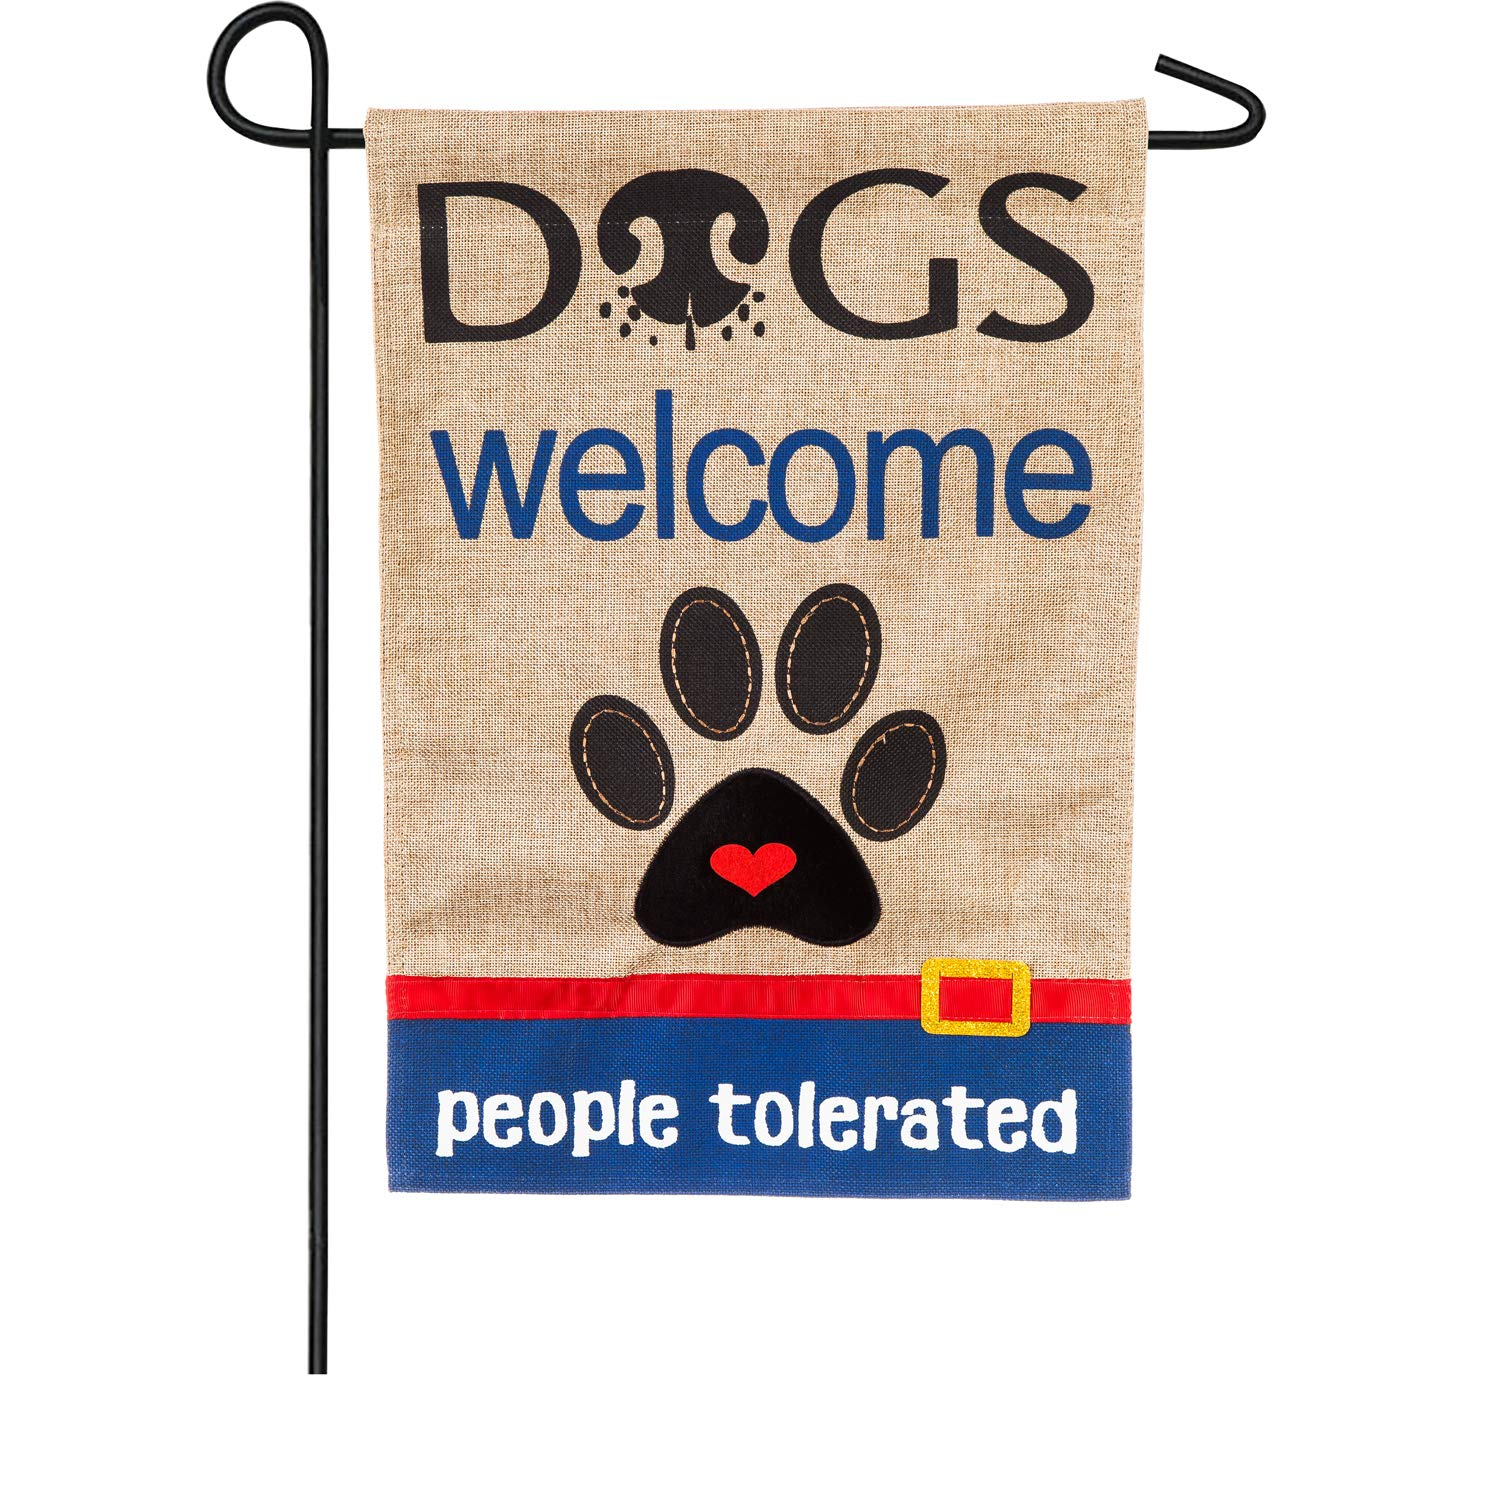 Dogs Welcome People Tolerated Garden Burlap Flag - 13 x 1 x 18 Inches